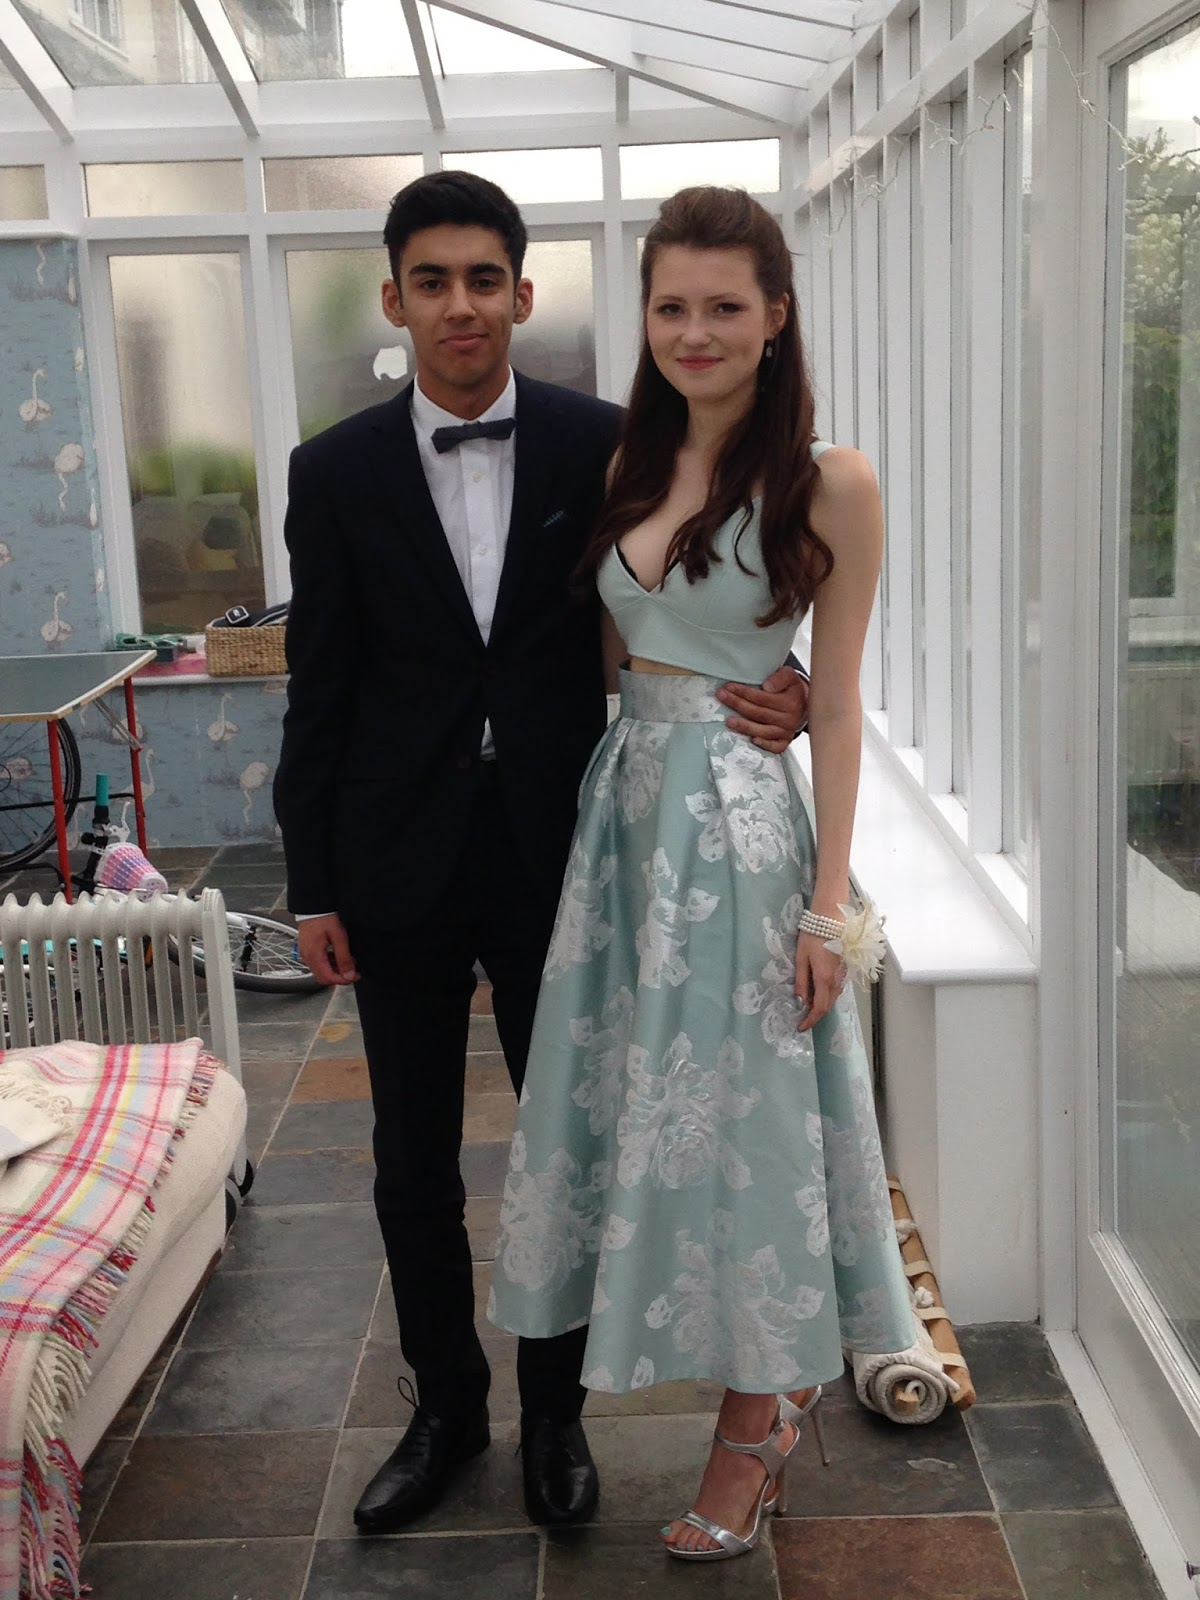 The alternative prom outfit….